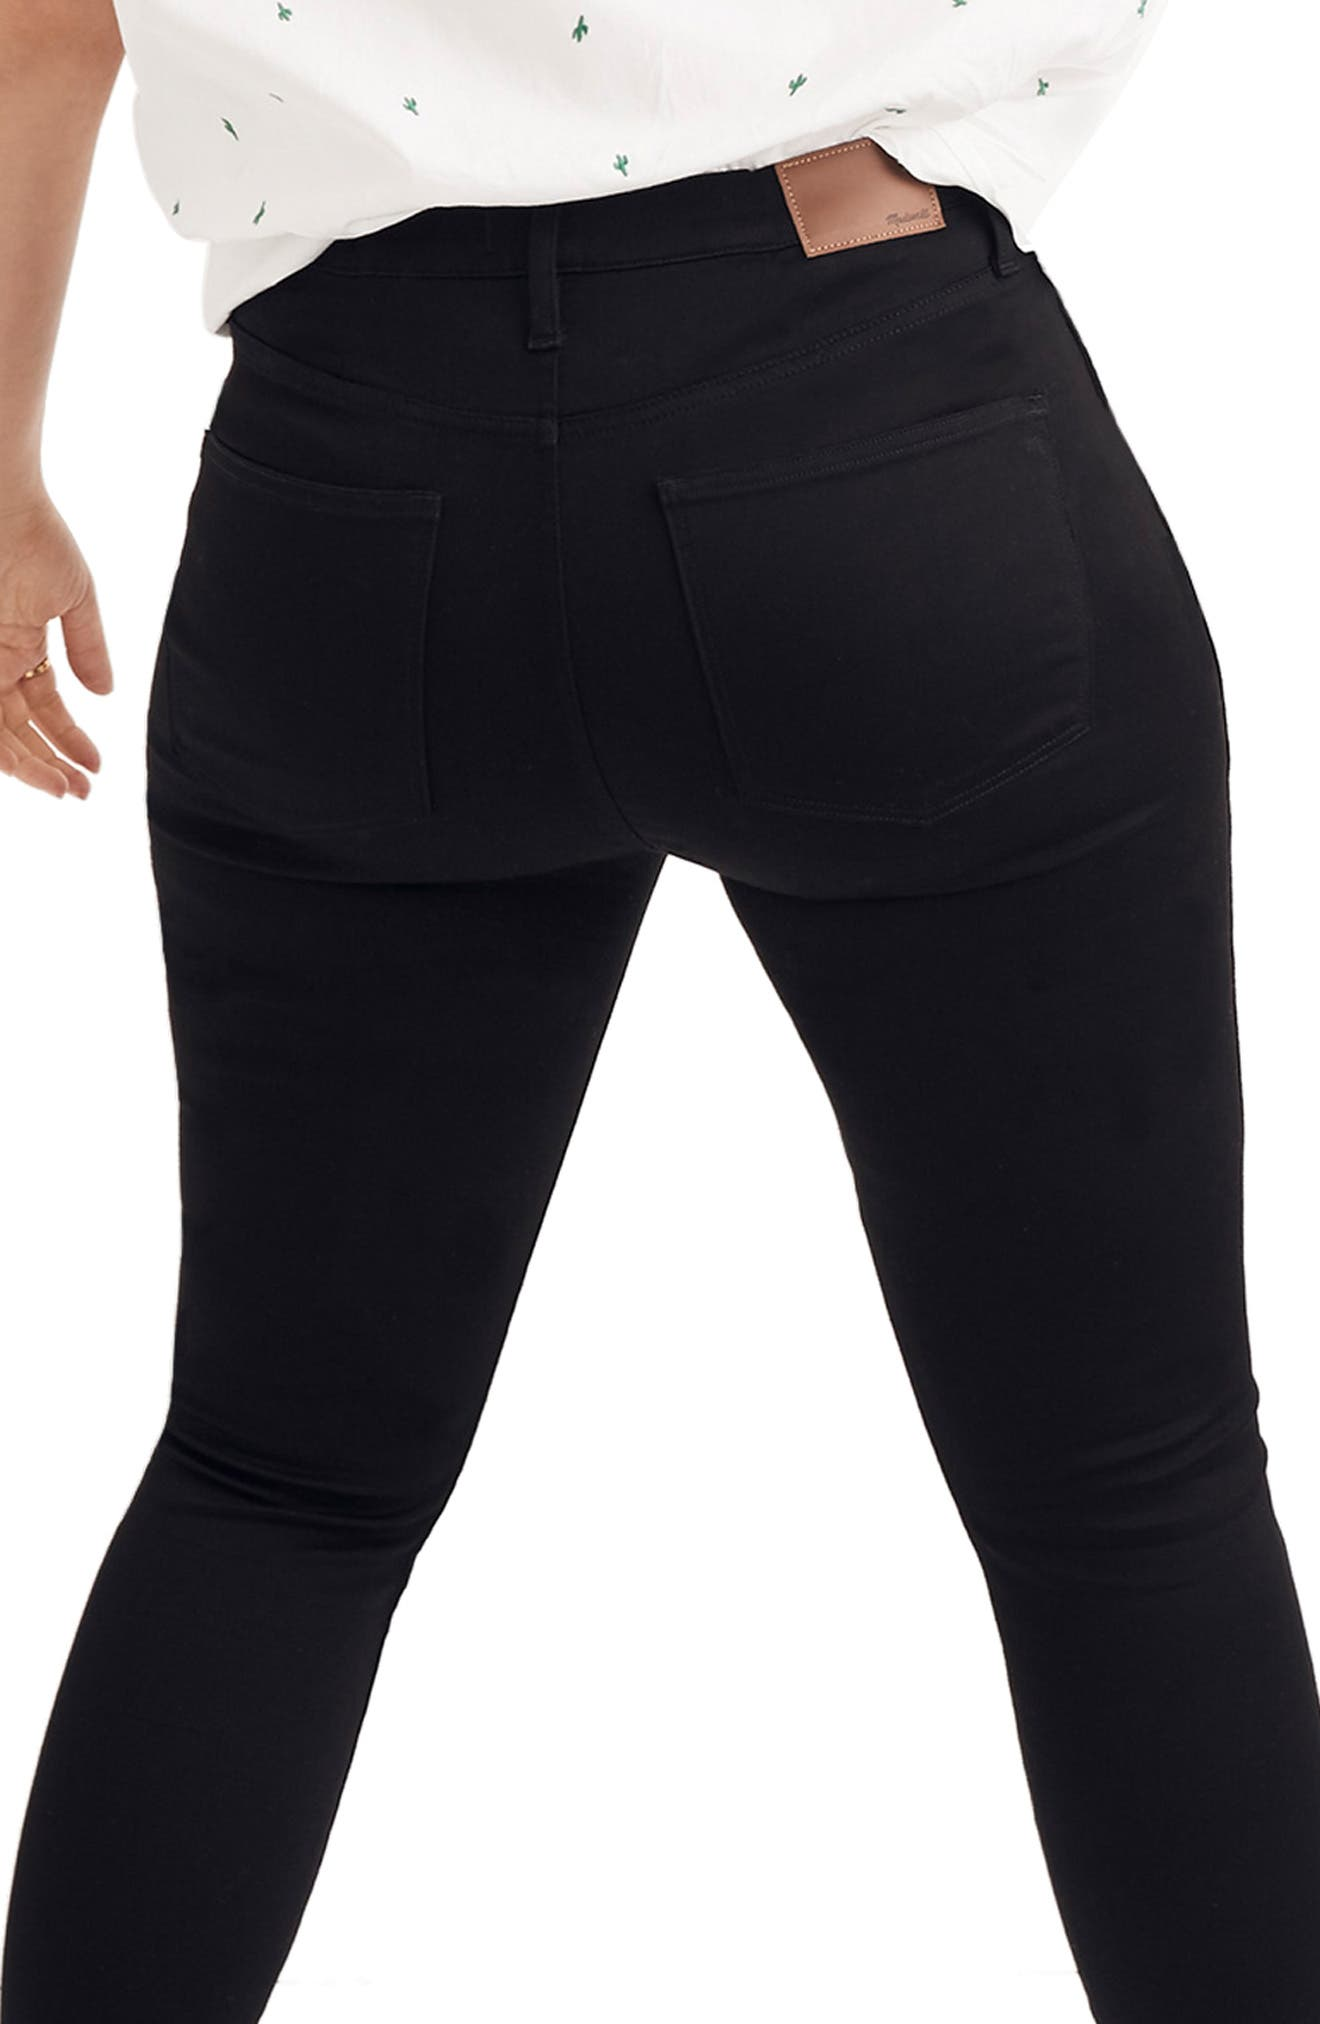 10-Inch High Rise Skinny Jeans,                             Alternate thumbnail 7, color,                             CARBONDALE